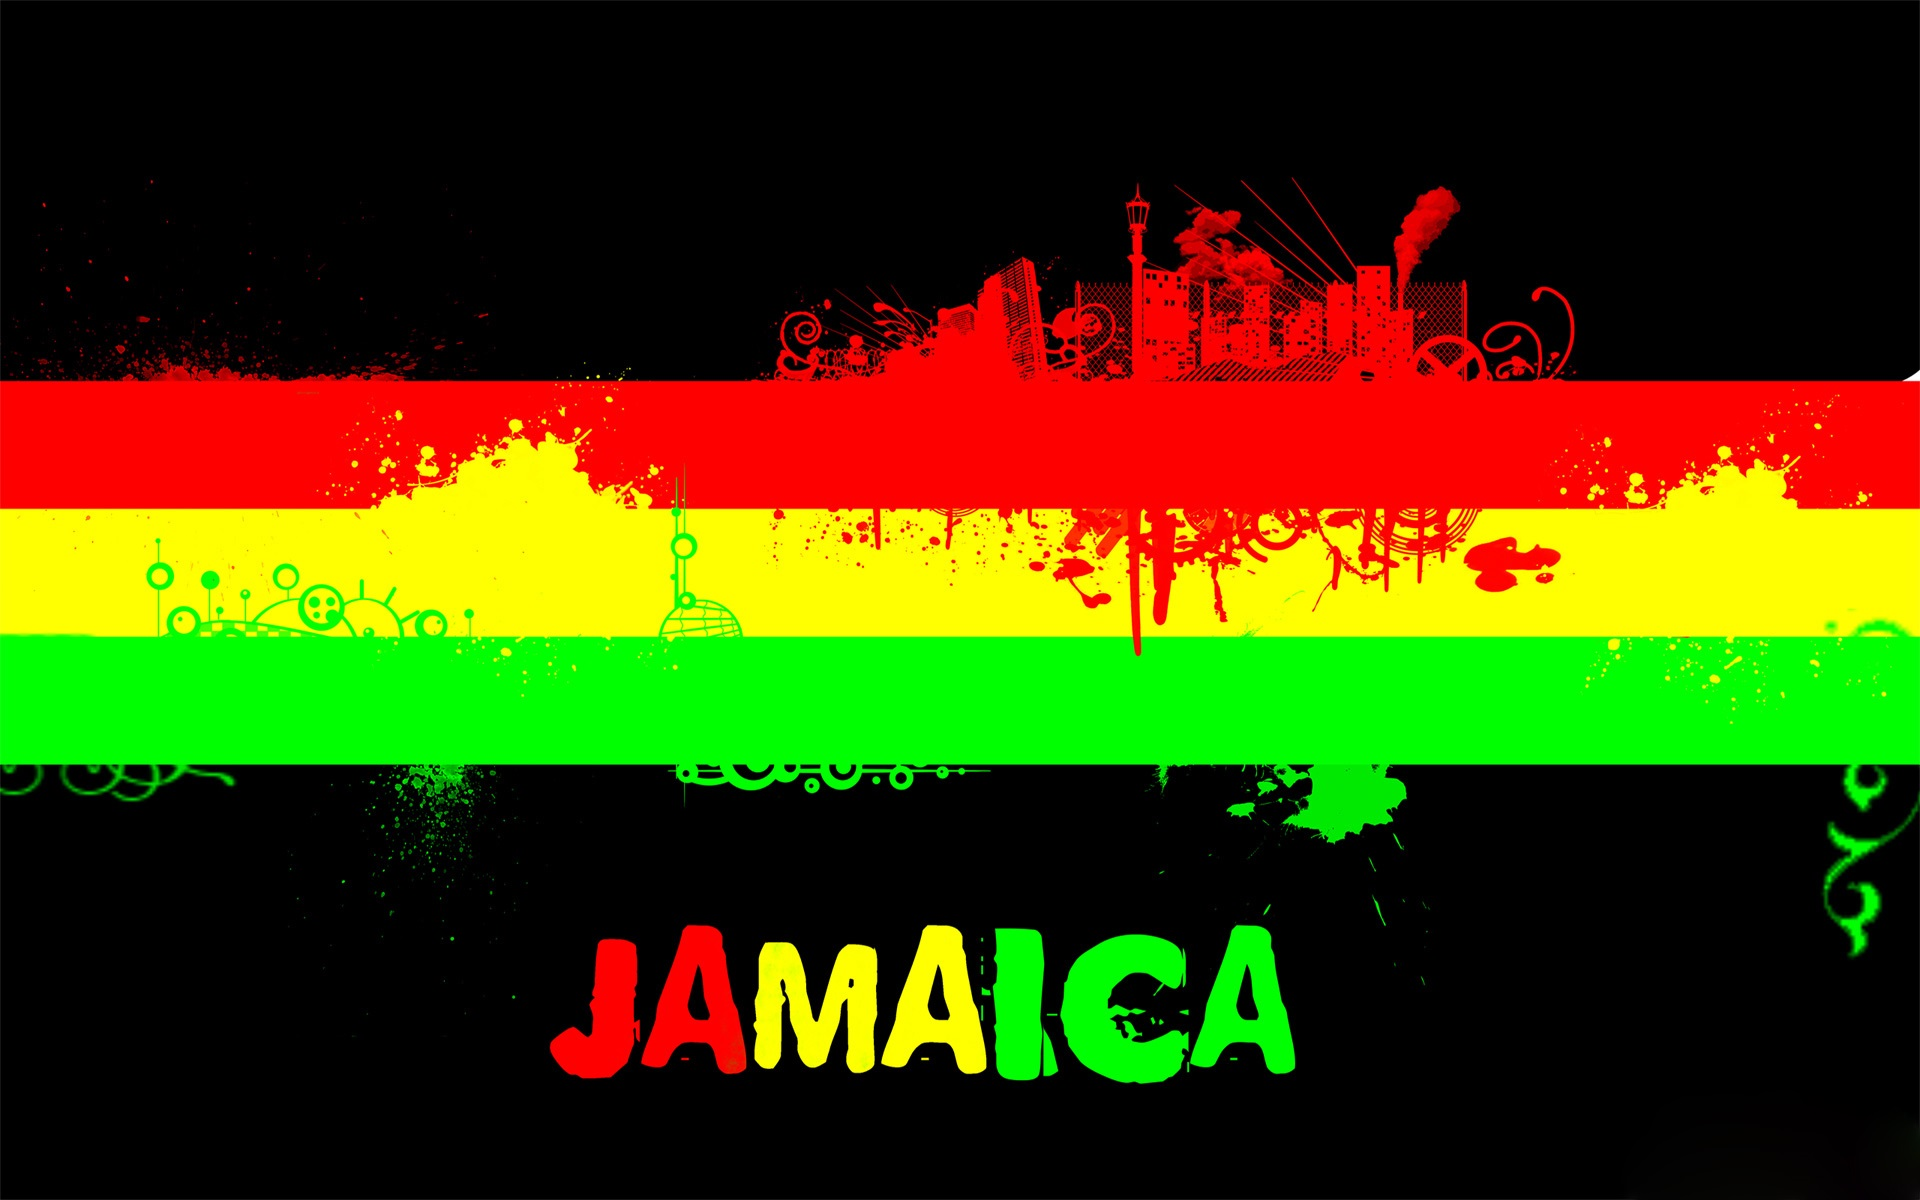 Wallpaper Rasta  63 Wallpapers. Wallpaper Rasta  63 Wallpapers    HD Wallpapers